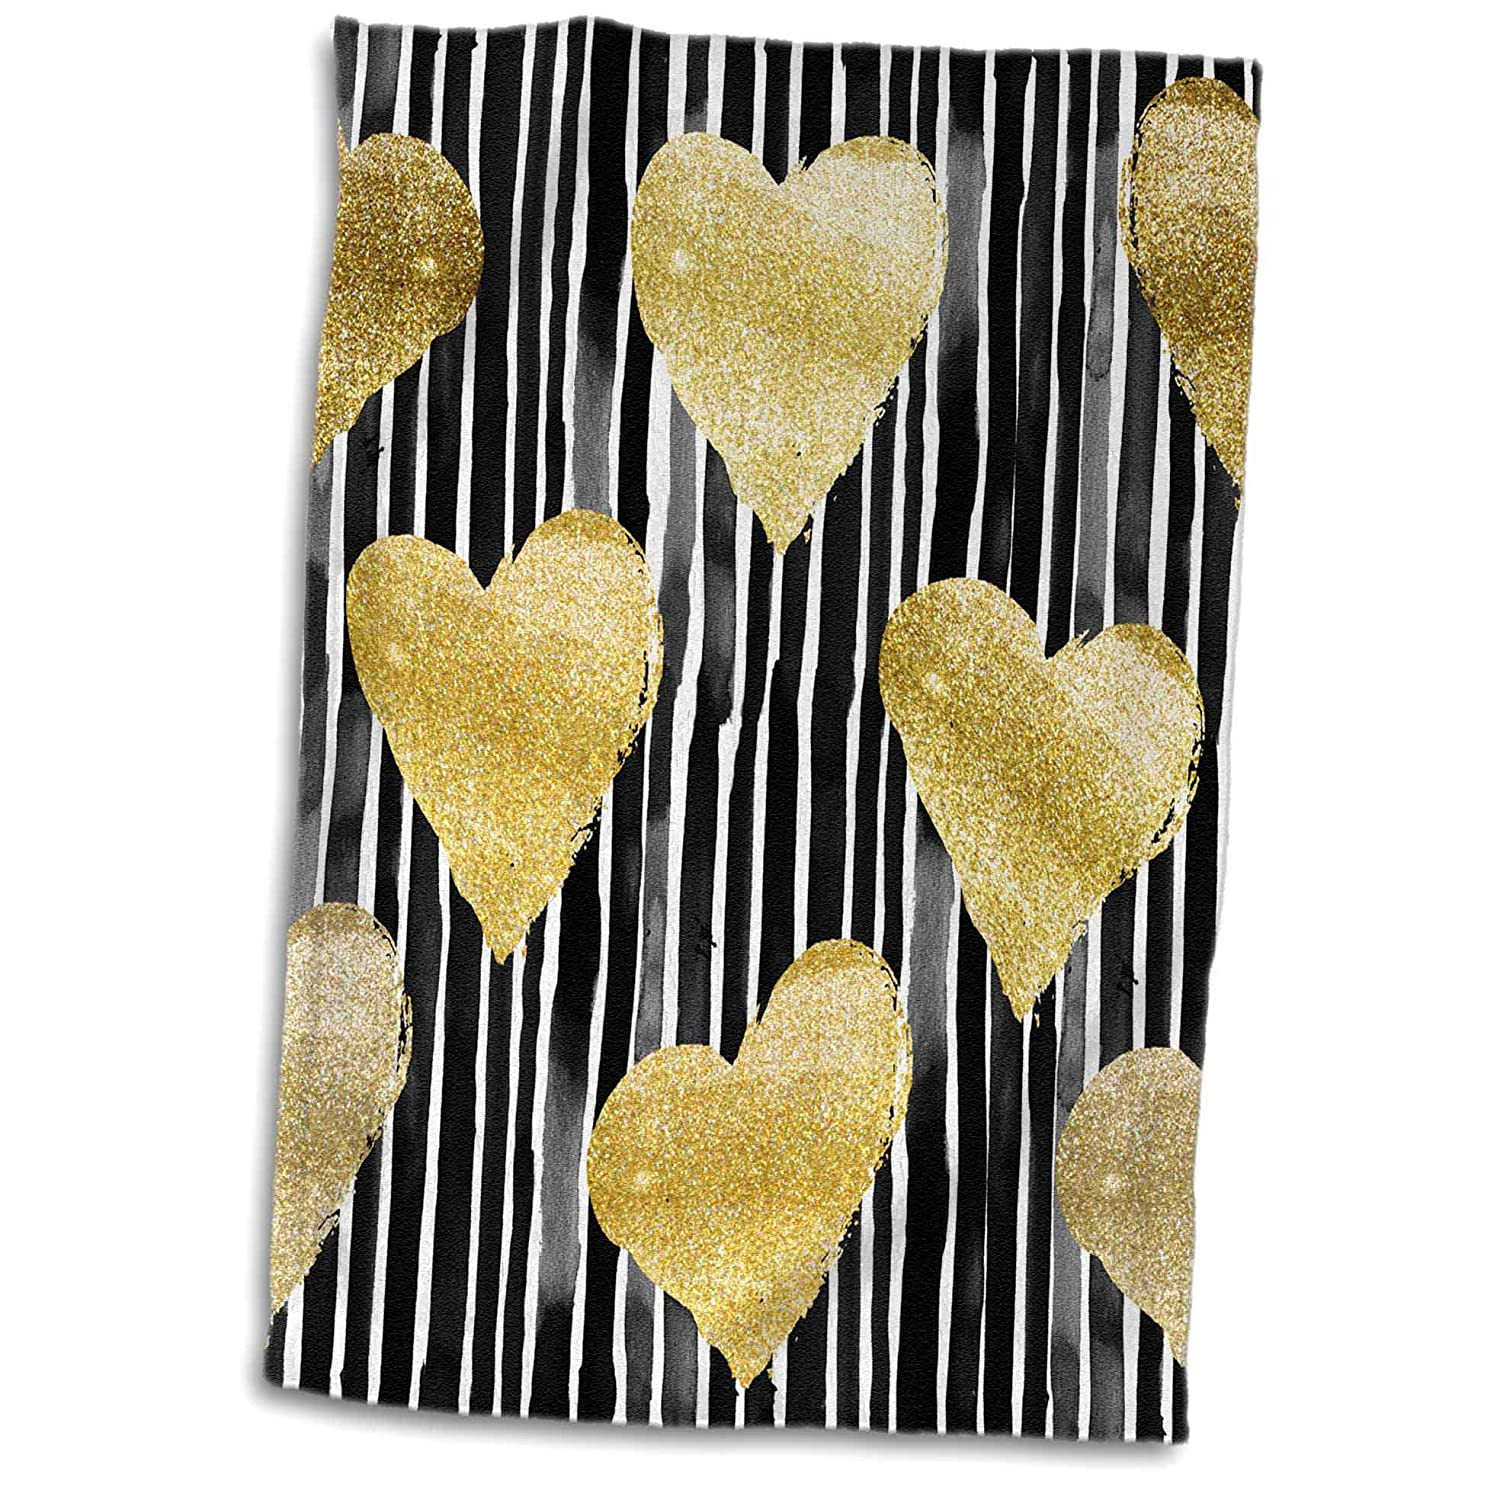 TWL/_252985/_1 3dRose Anne Marie Baugh Patterns 15x22 Hand Towel Black and White Hand Painted Stripes with Gold Hearts Pattern